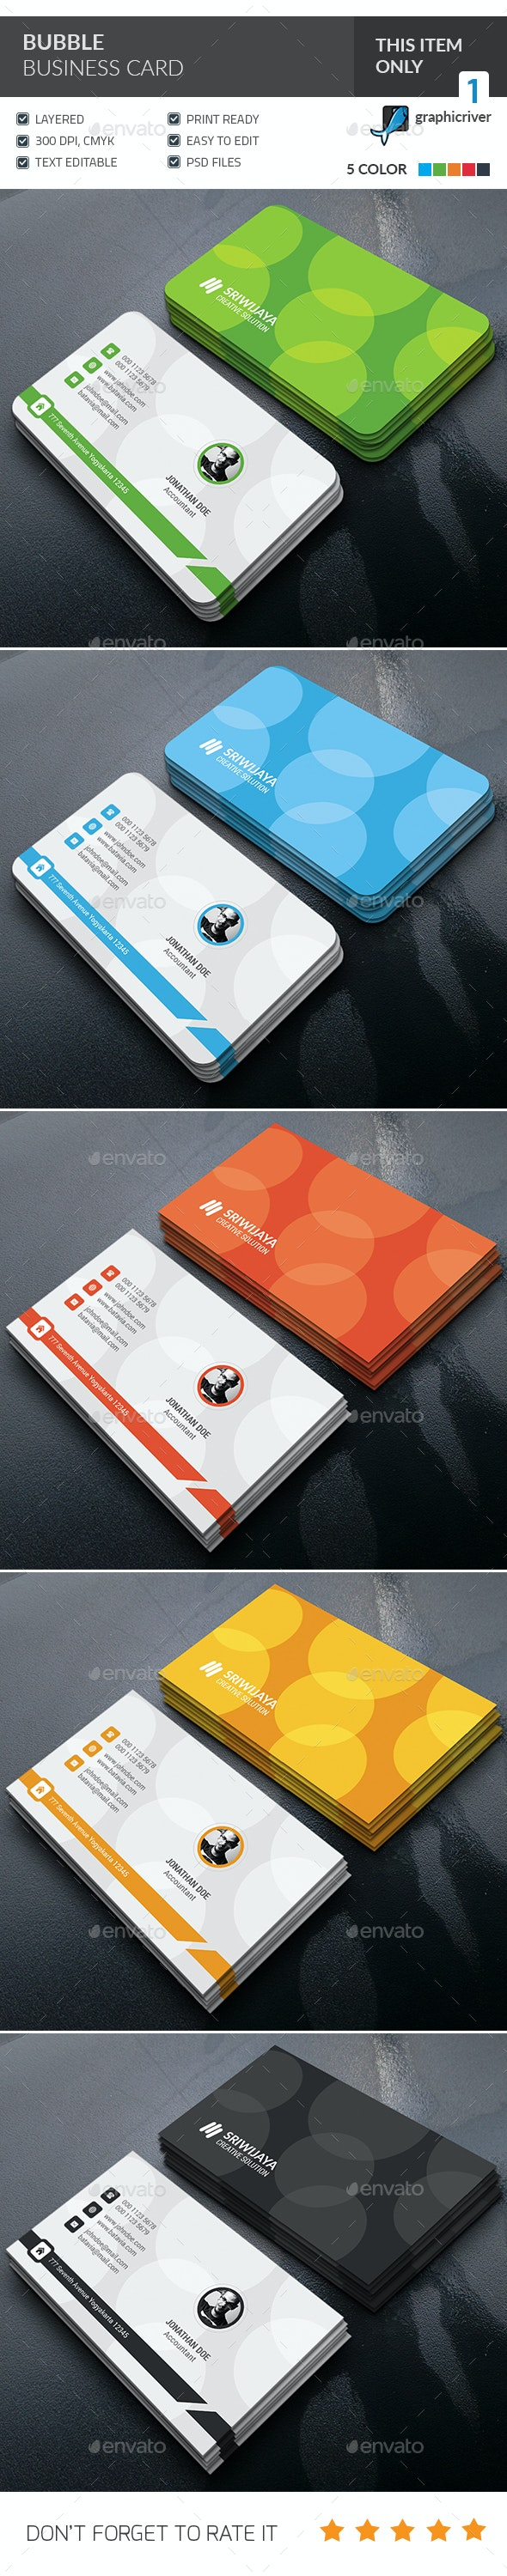 Bubble Business Card - Corporate Business Cards